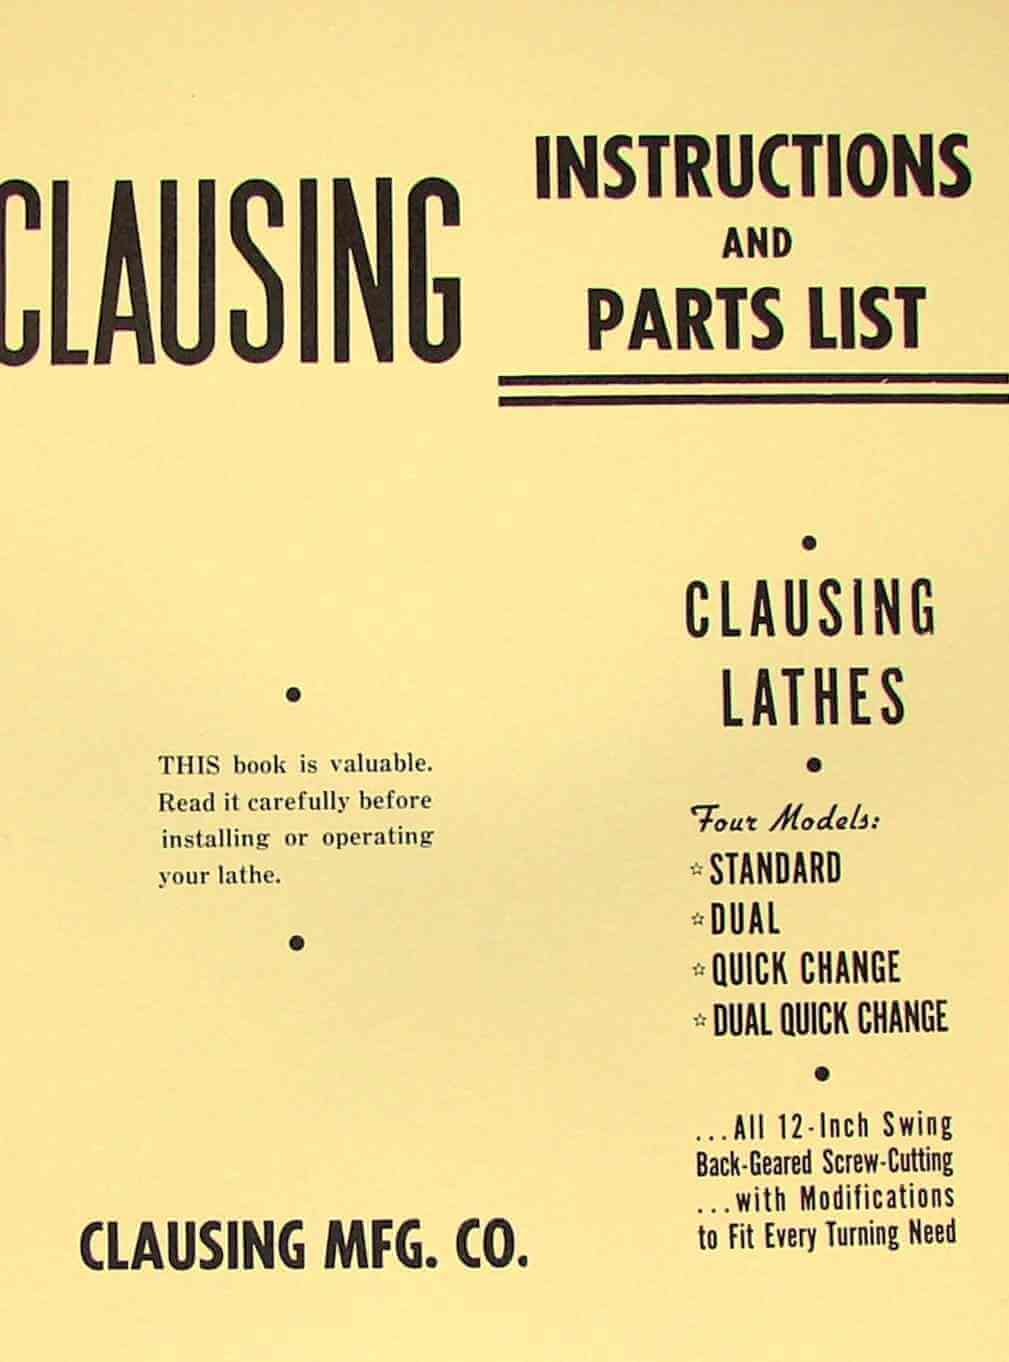 Clausing Atlas 12 100 Series Lathe Operators Instructions Parts Sewing Machine Threading Diagram Manual Ozark Tool Manuals Books